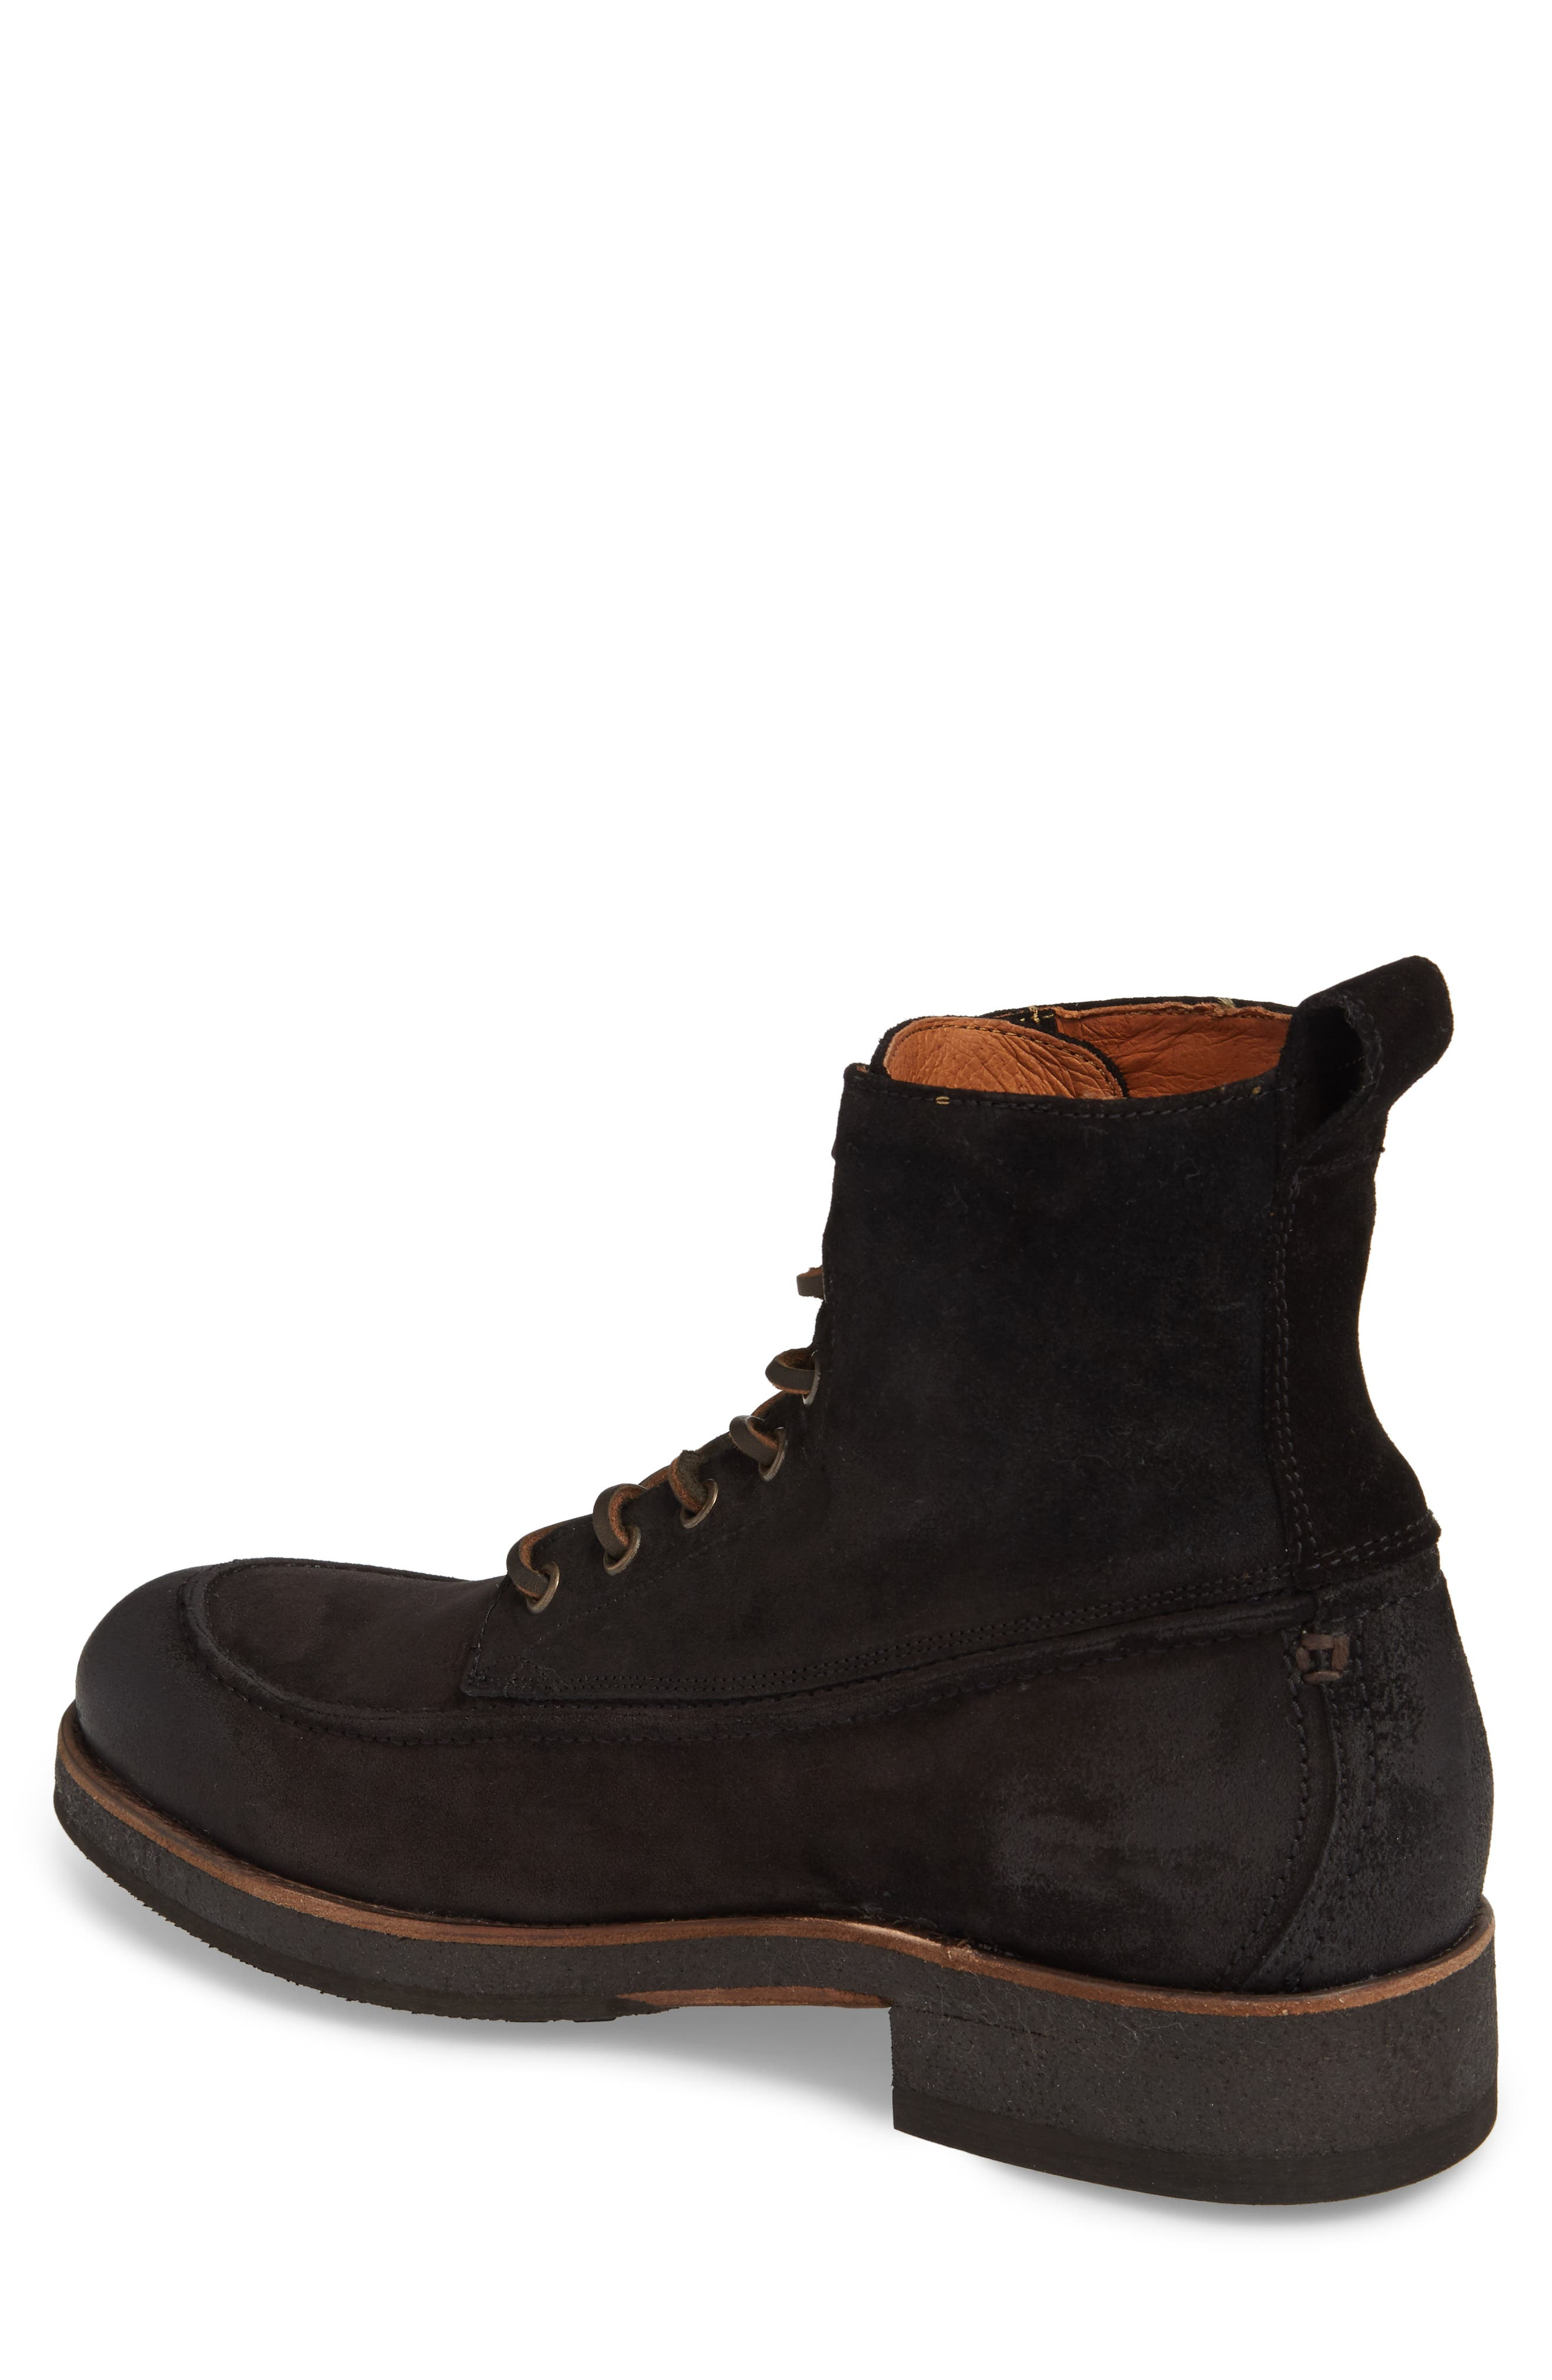 FRYE,                             Rainier Waxed Work Boot,                             Alternate thumbnail 2, color,                             001